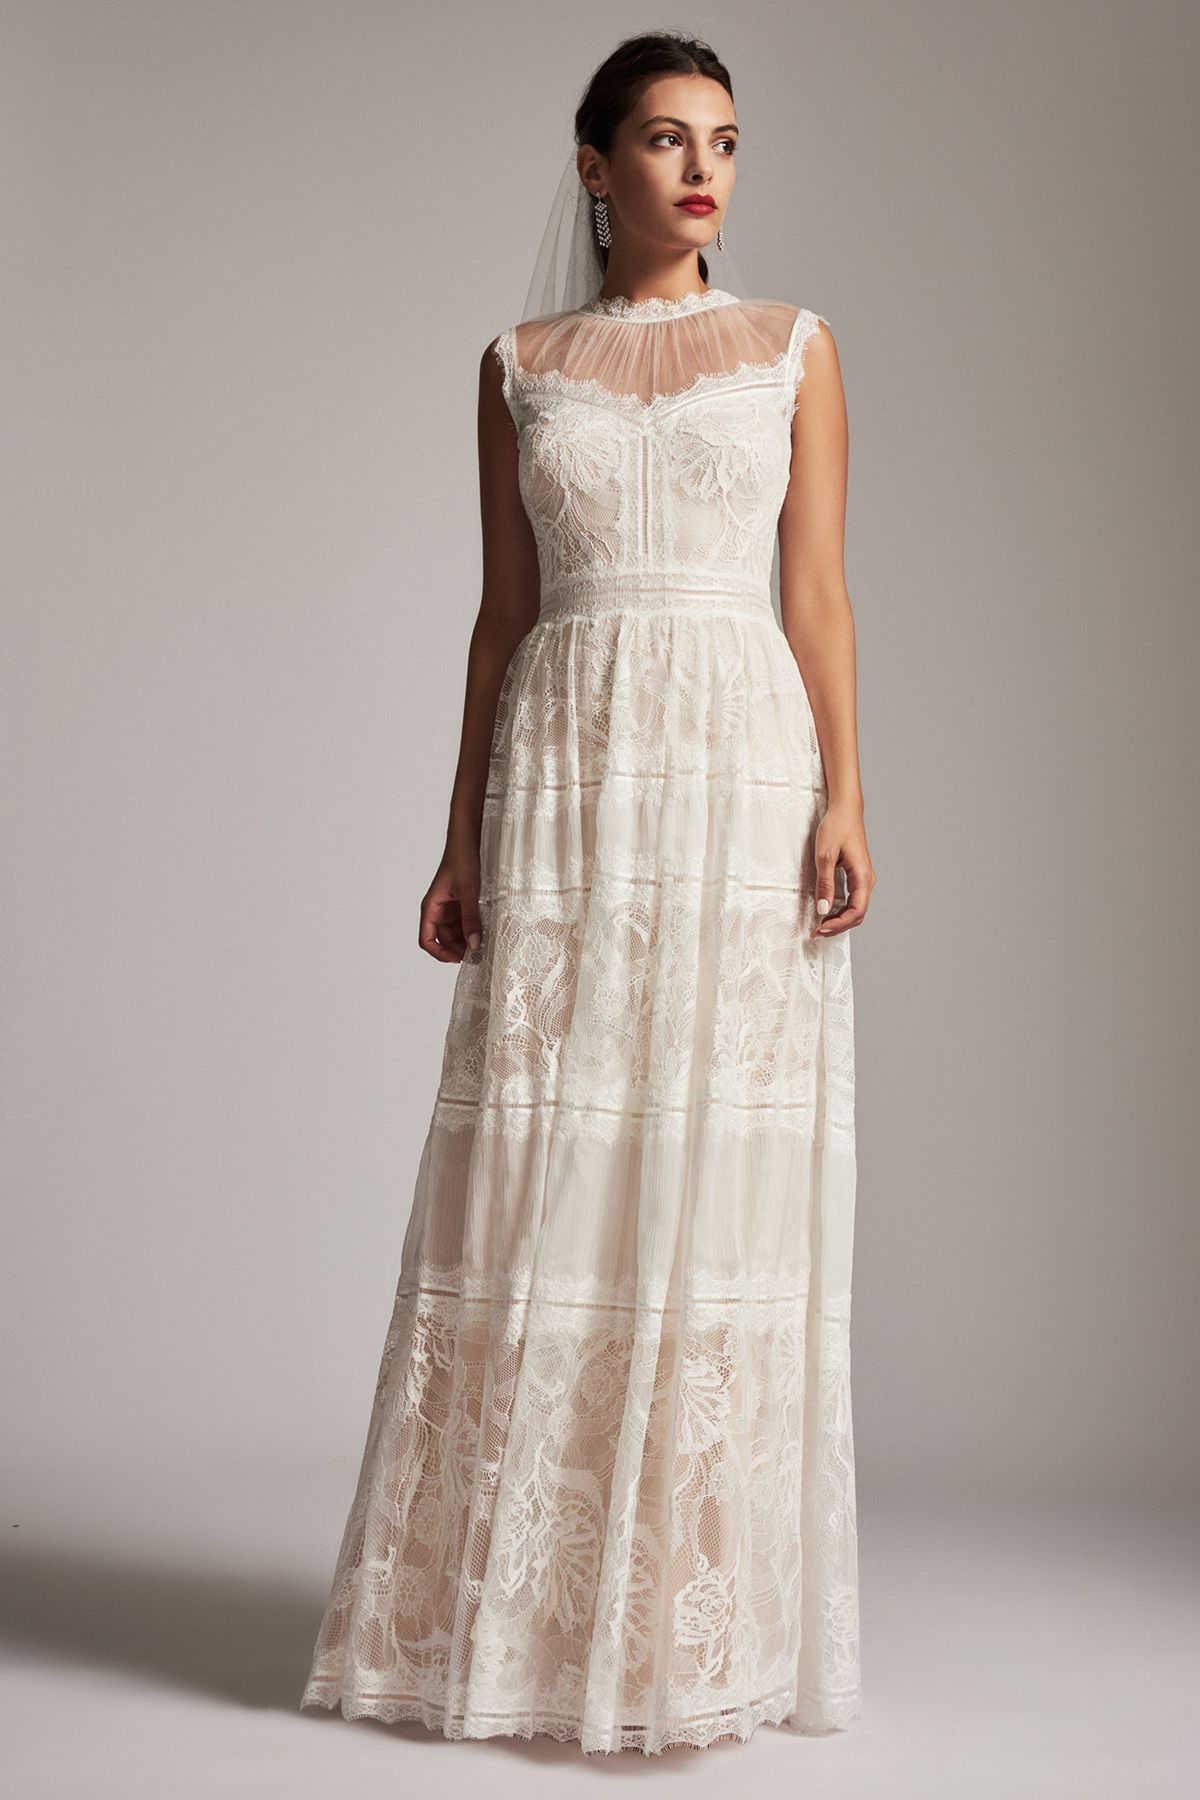 50% Off Select Bridal Styles At Tadashi Shoji - Limited Time Only ...